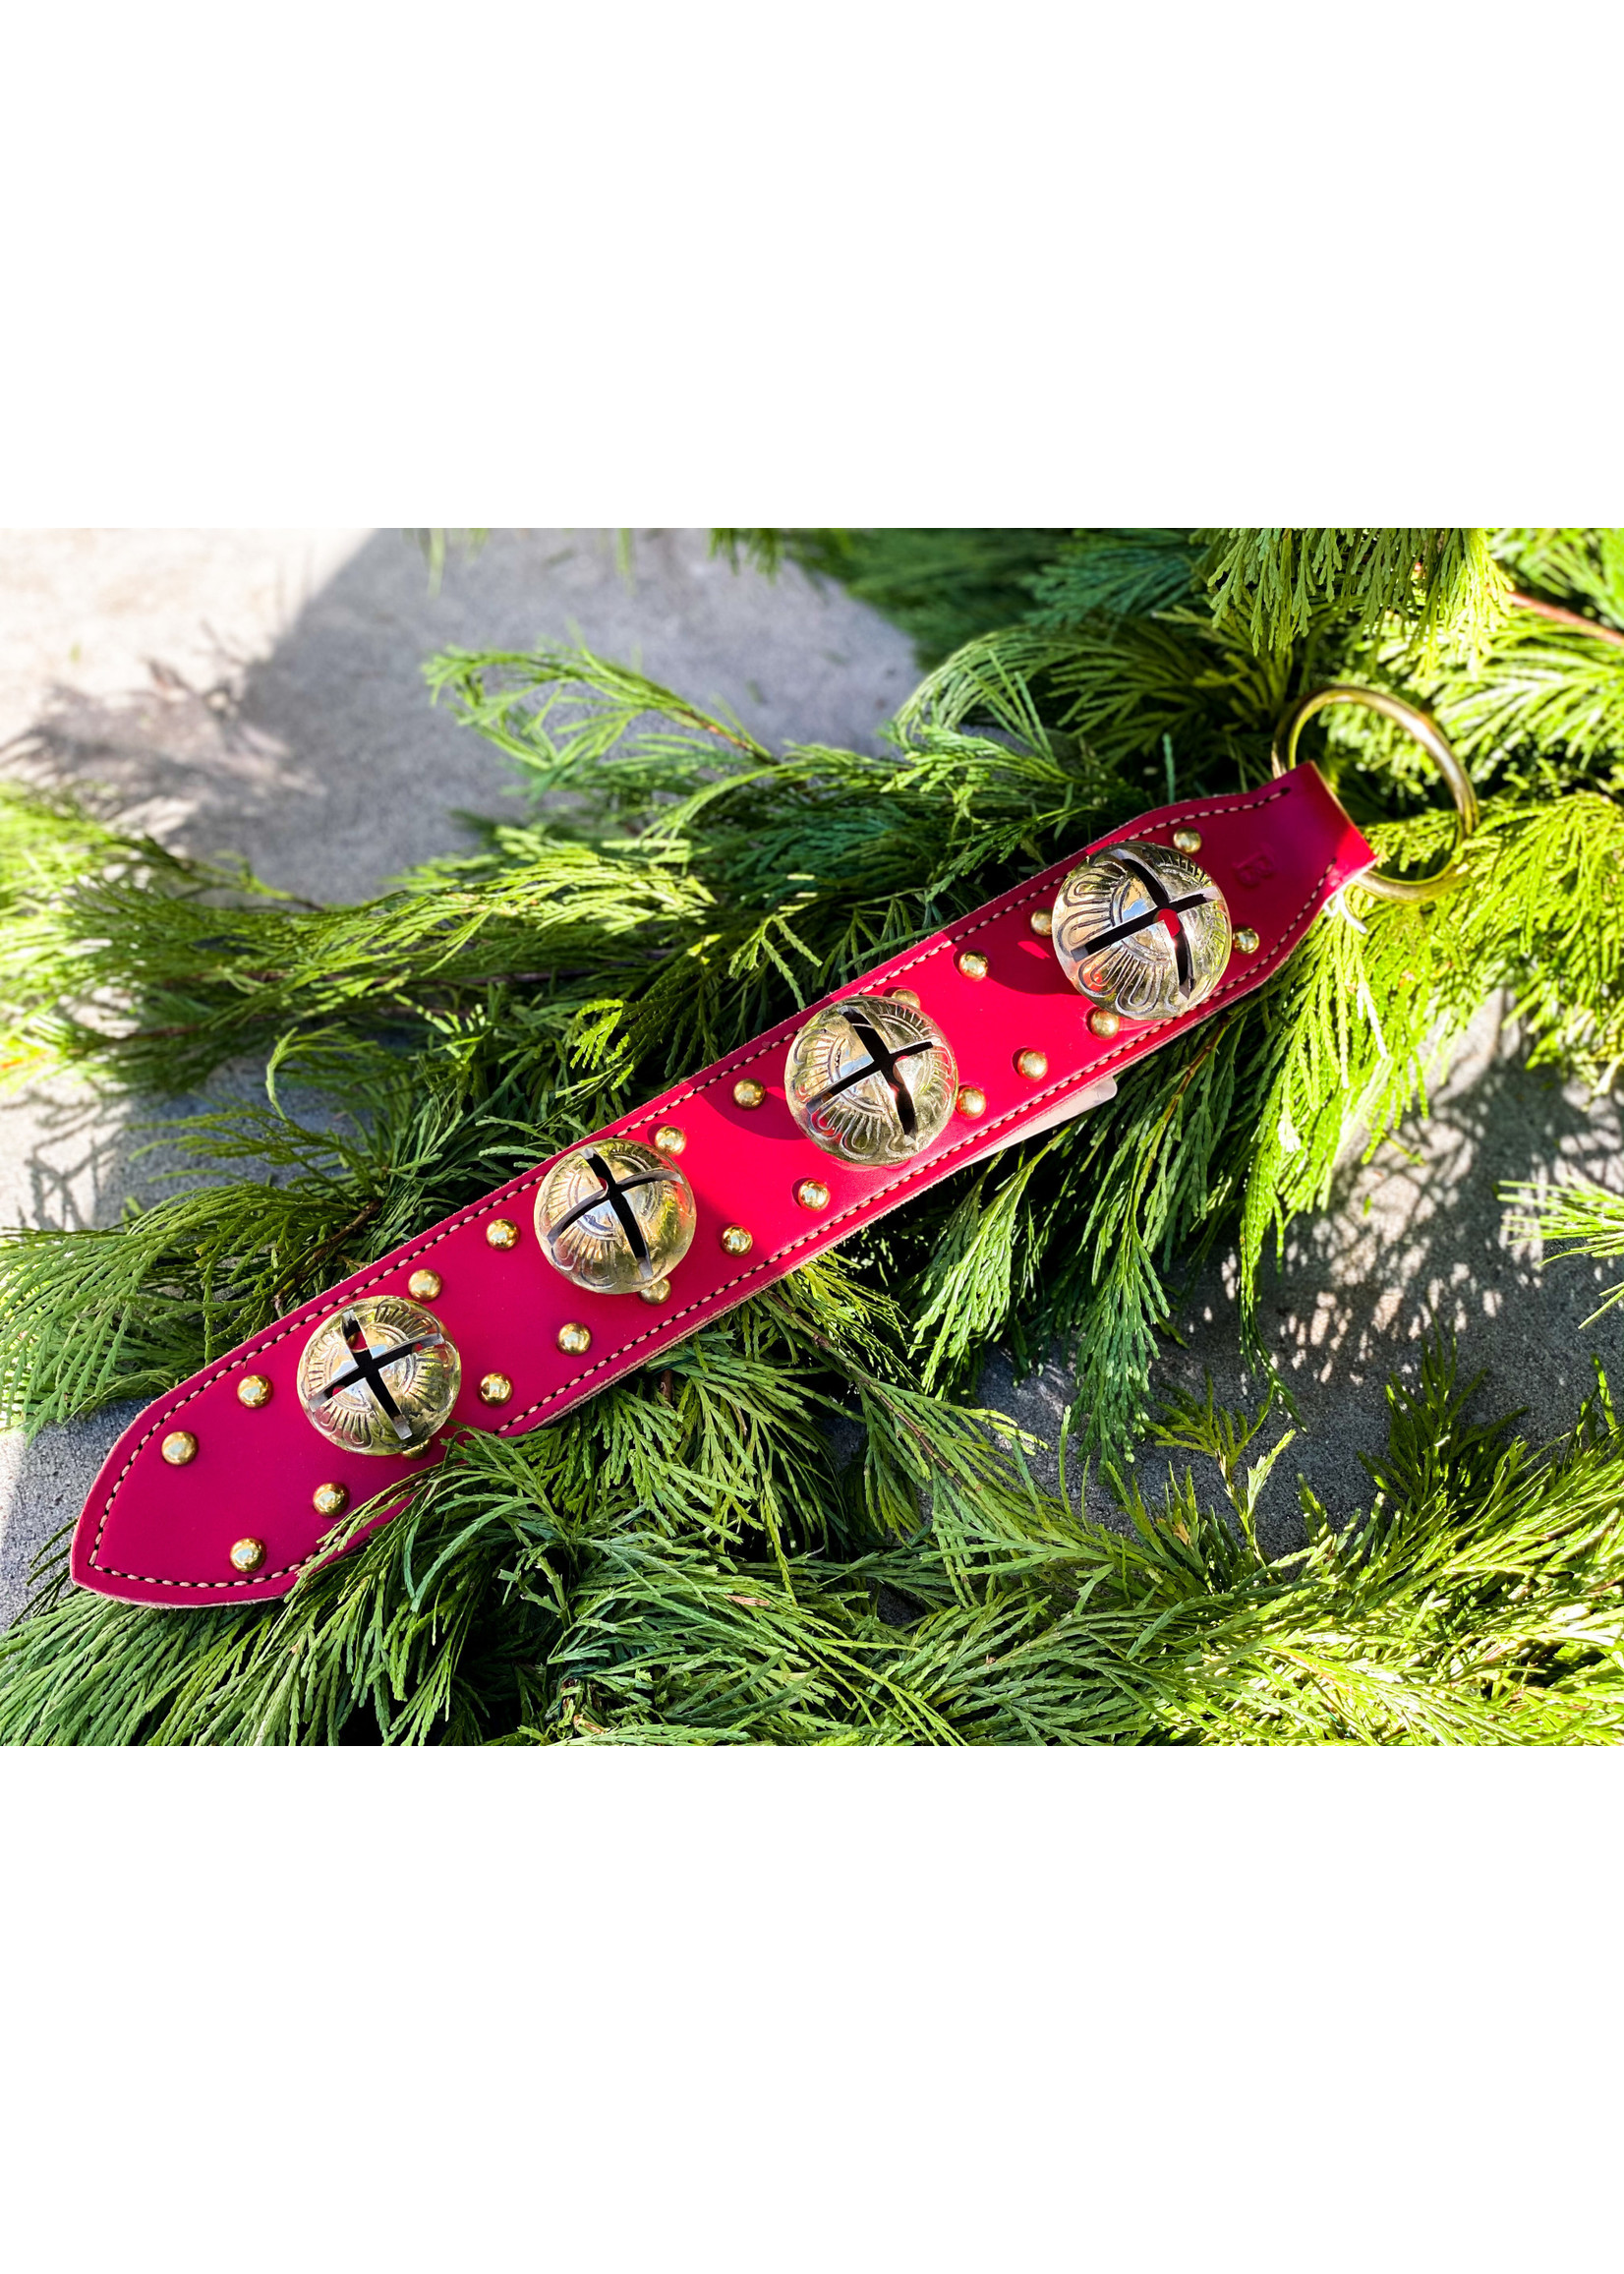 Bells - Stitched & Studded 4 Bell Strap - Red